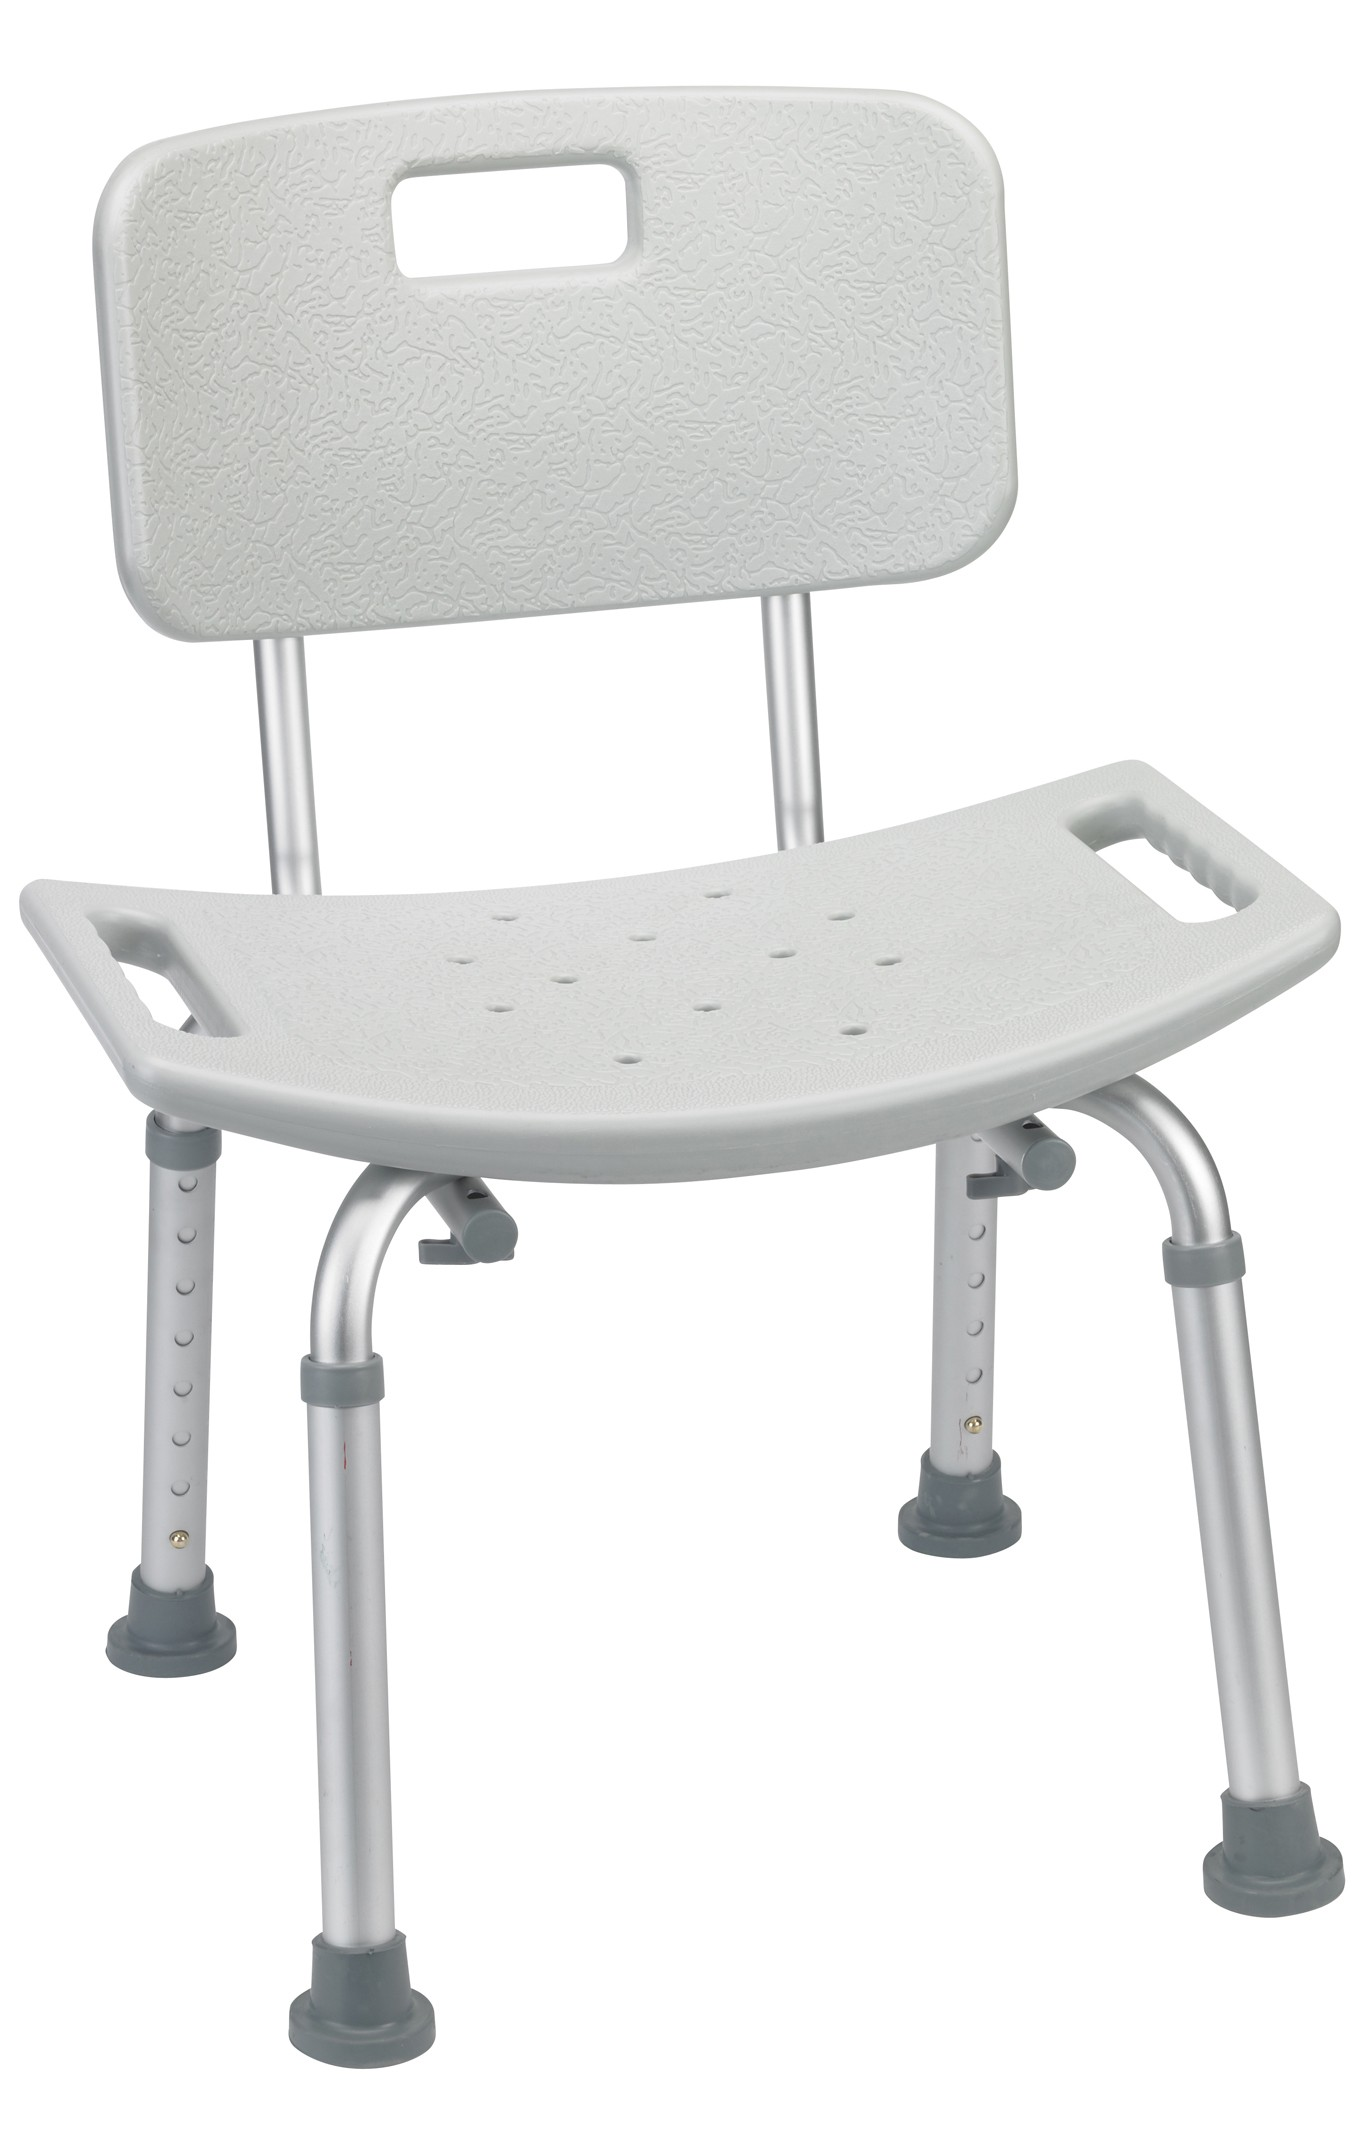 bathub shower accessibility chair